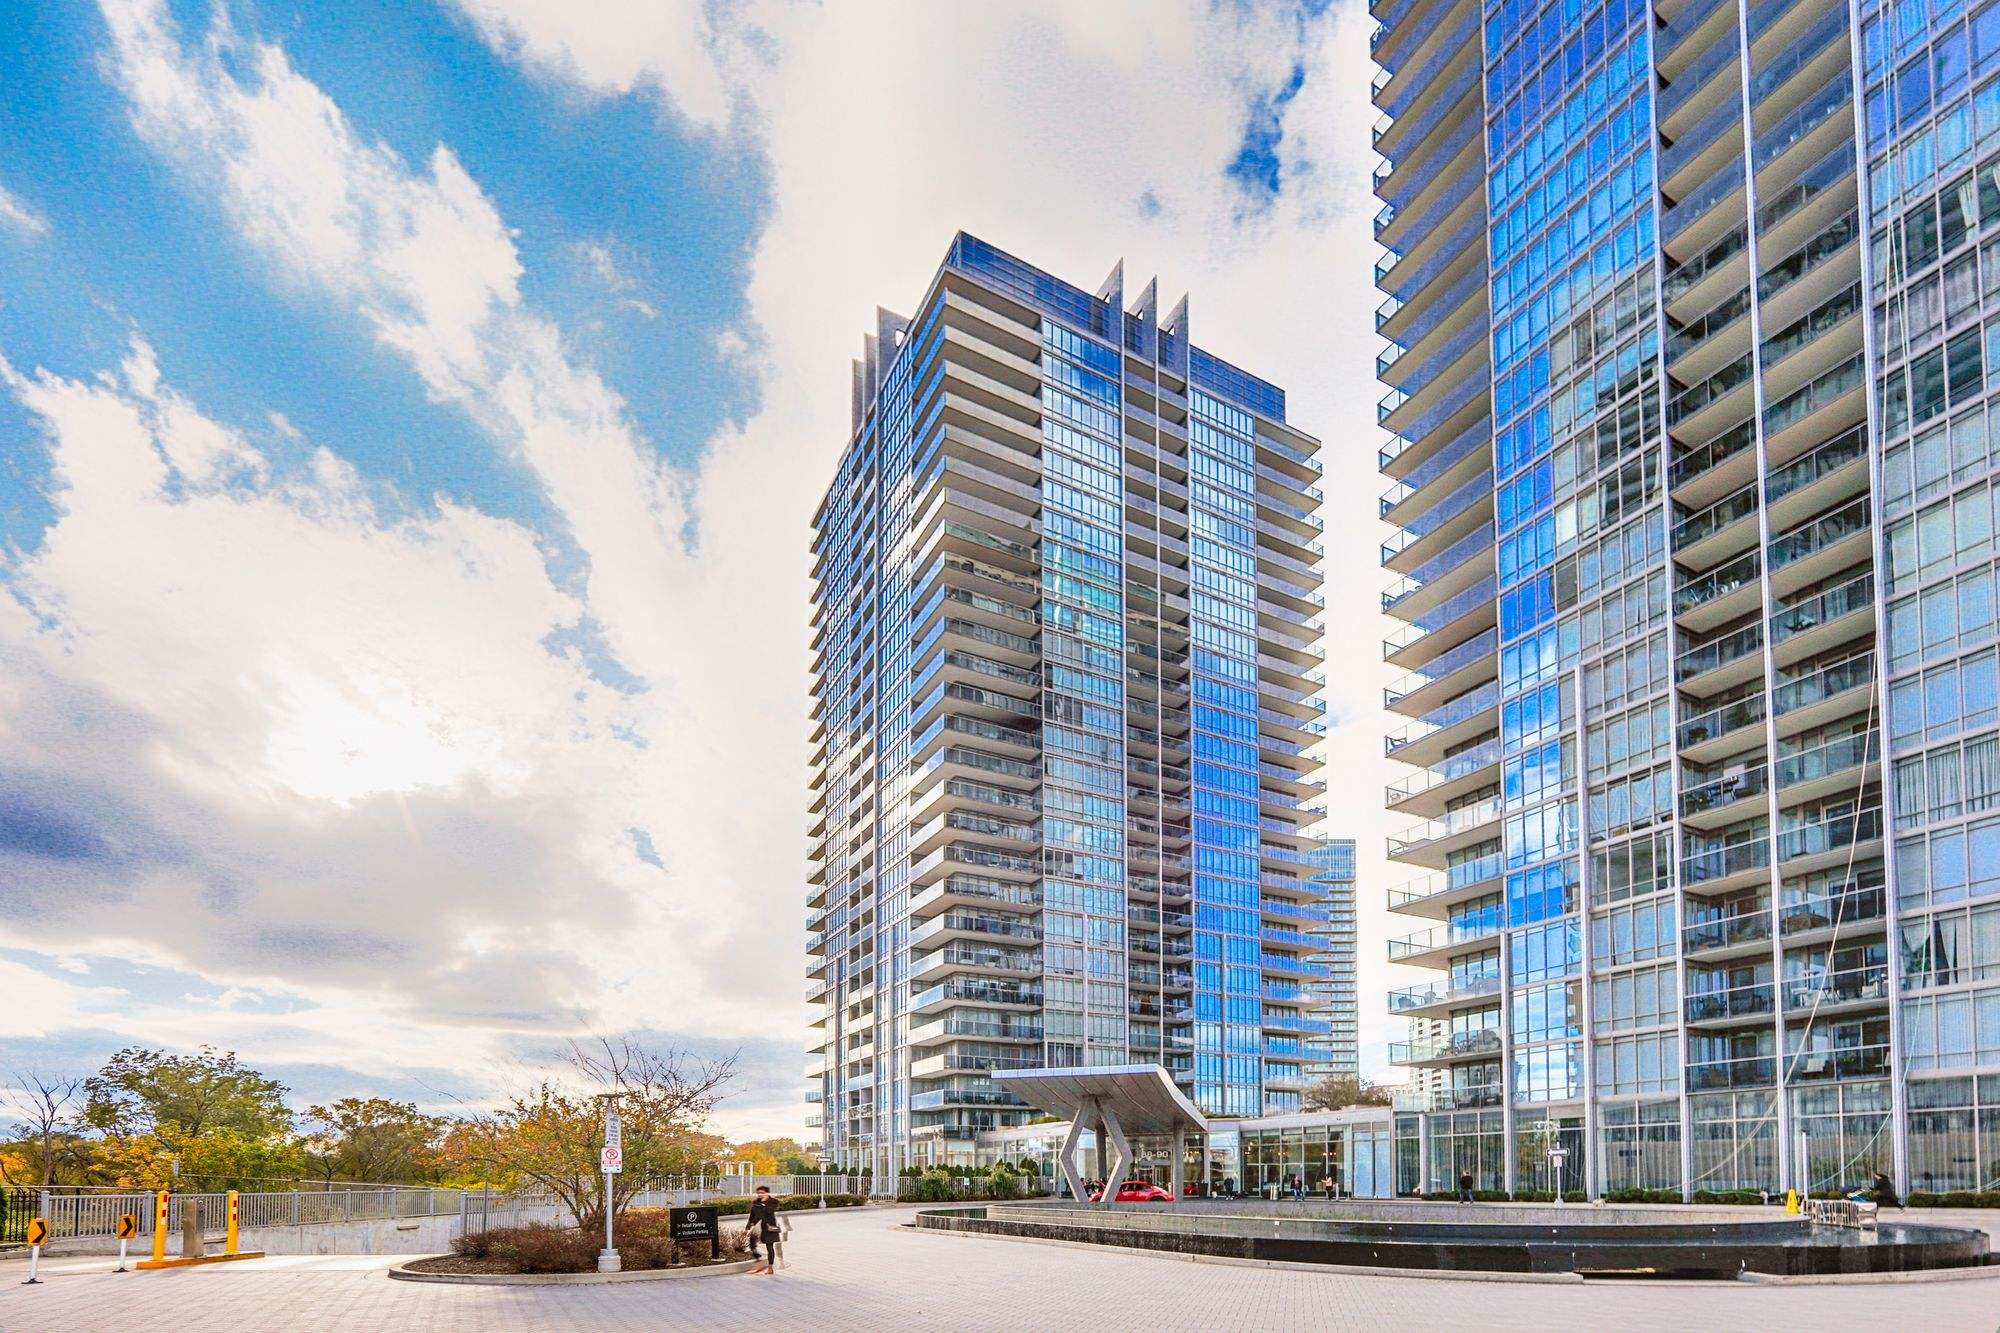 88 Park Lawn Rd. This condo at South Beach Condos is located in  Etobicoke, Toronto - image #1 of 5 by Strata.ca